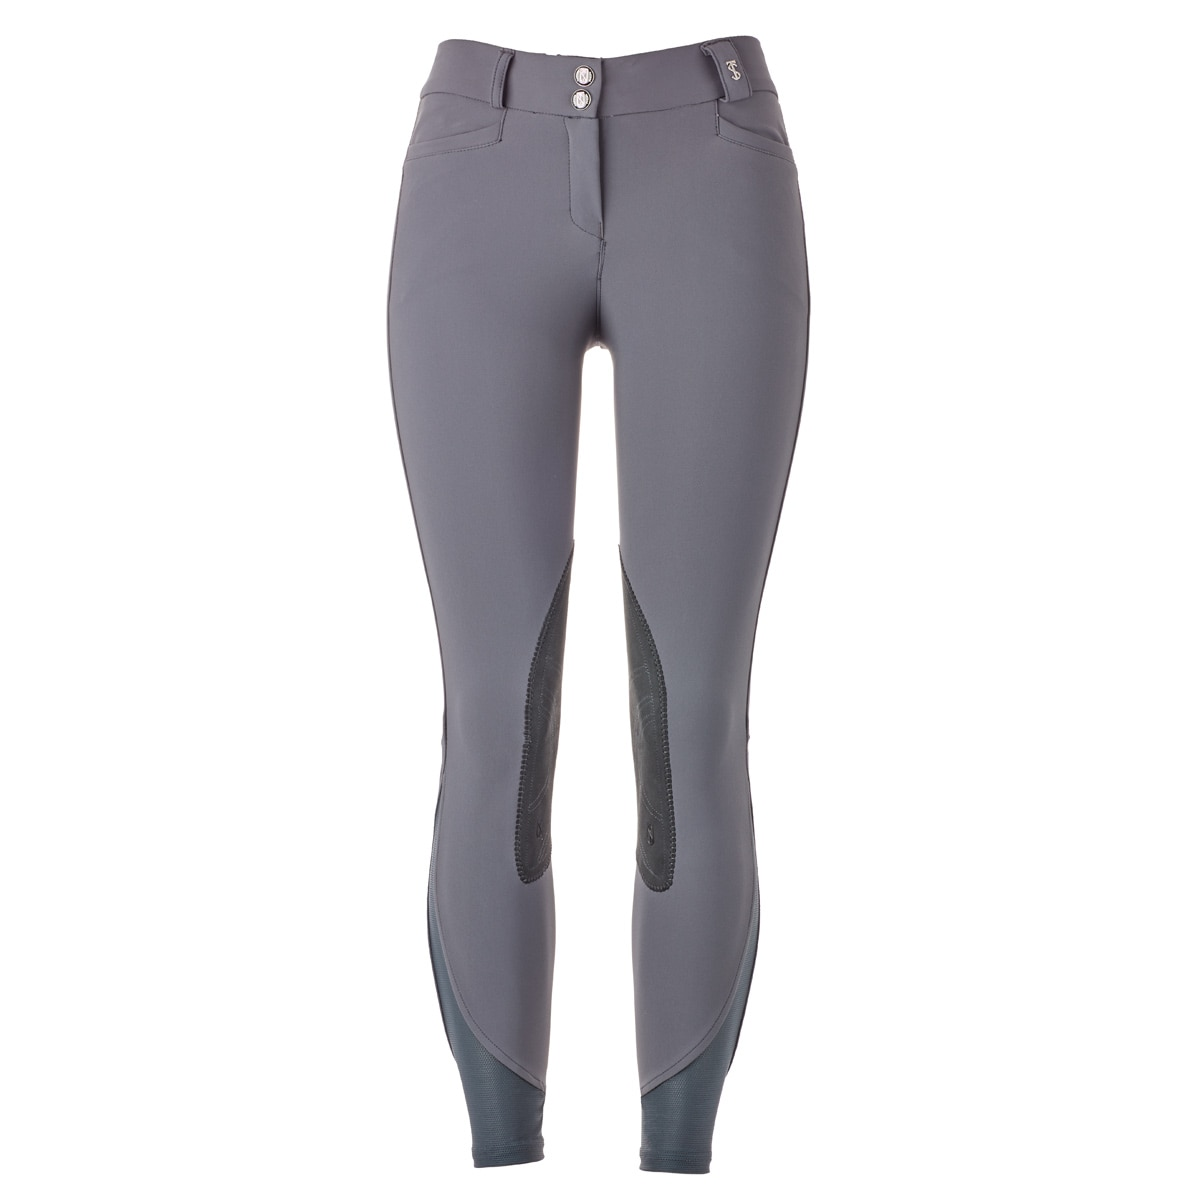 Tredstep Ireland Solo Classic Ladies Fullseat Riding Breeches Motion Fit Outdoor Sports